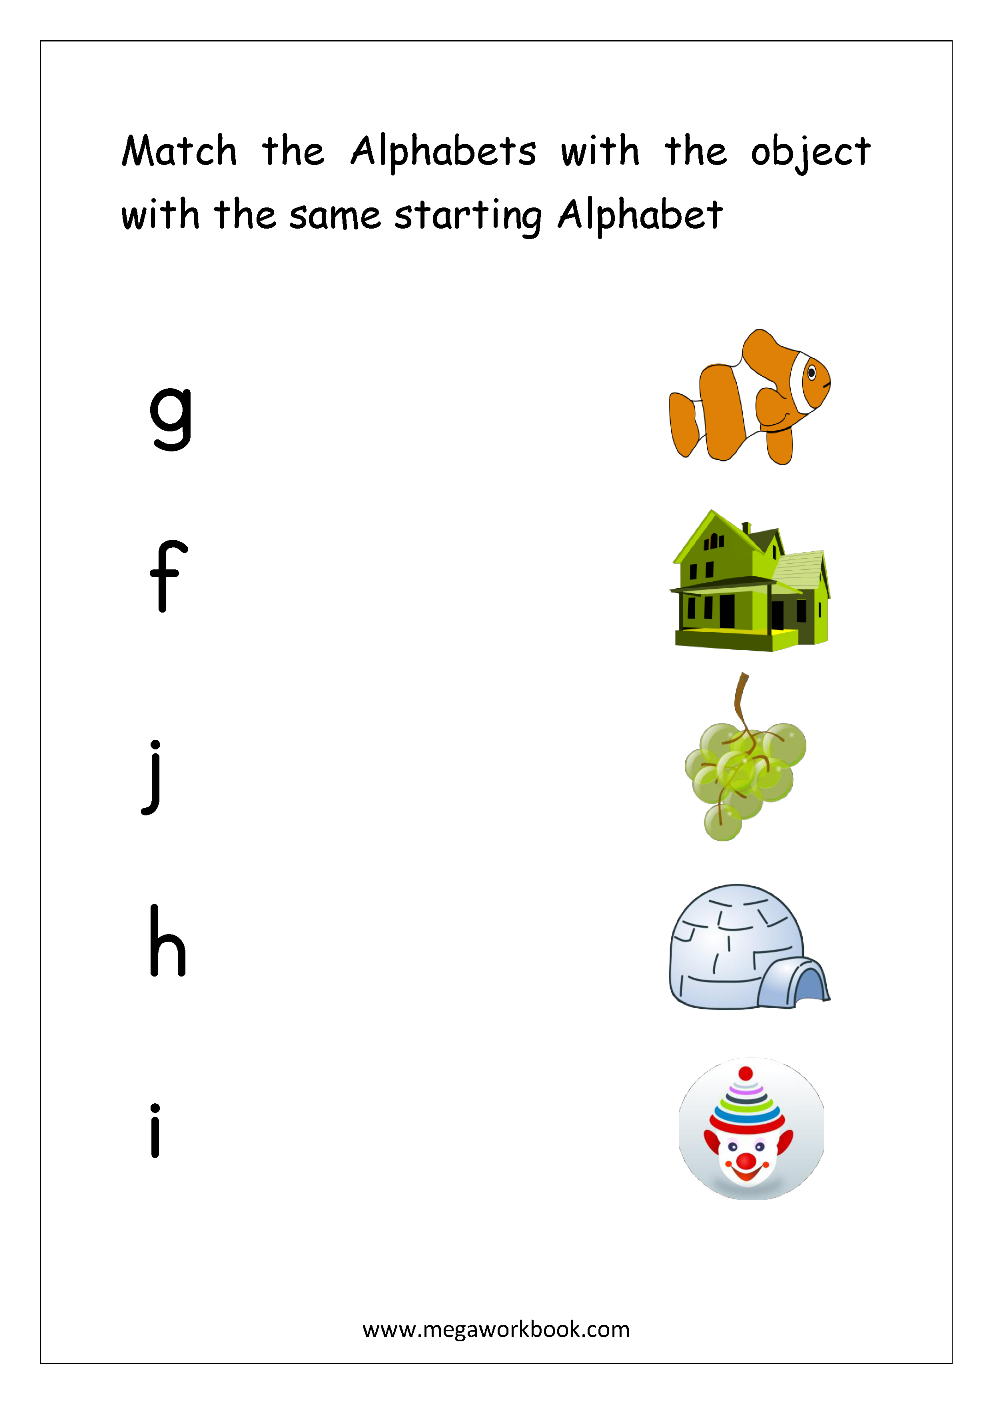 English Worksheets - Alphabet Matching In 2020 | Letter within Alphabet Matching Worksheets With Pictures